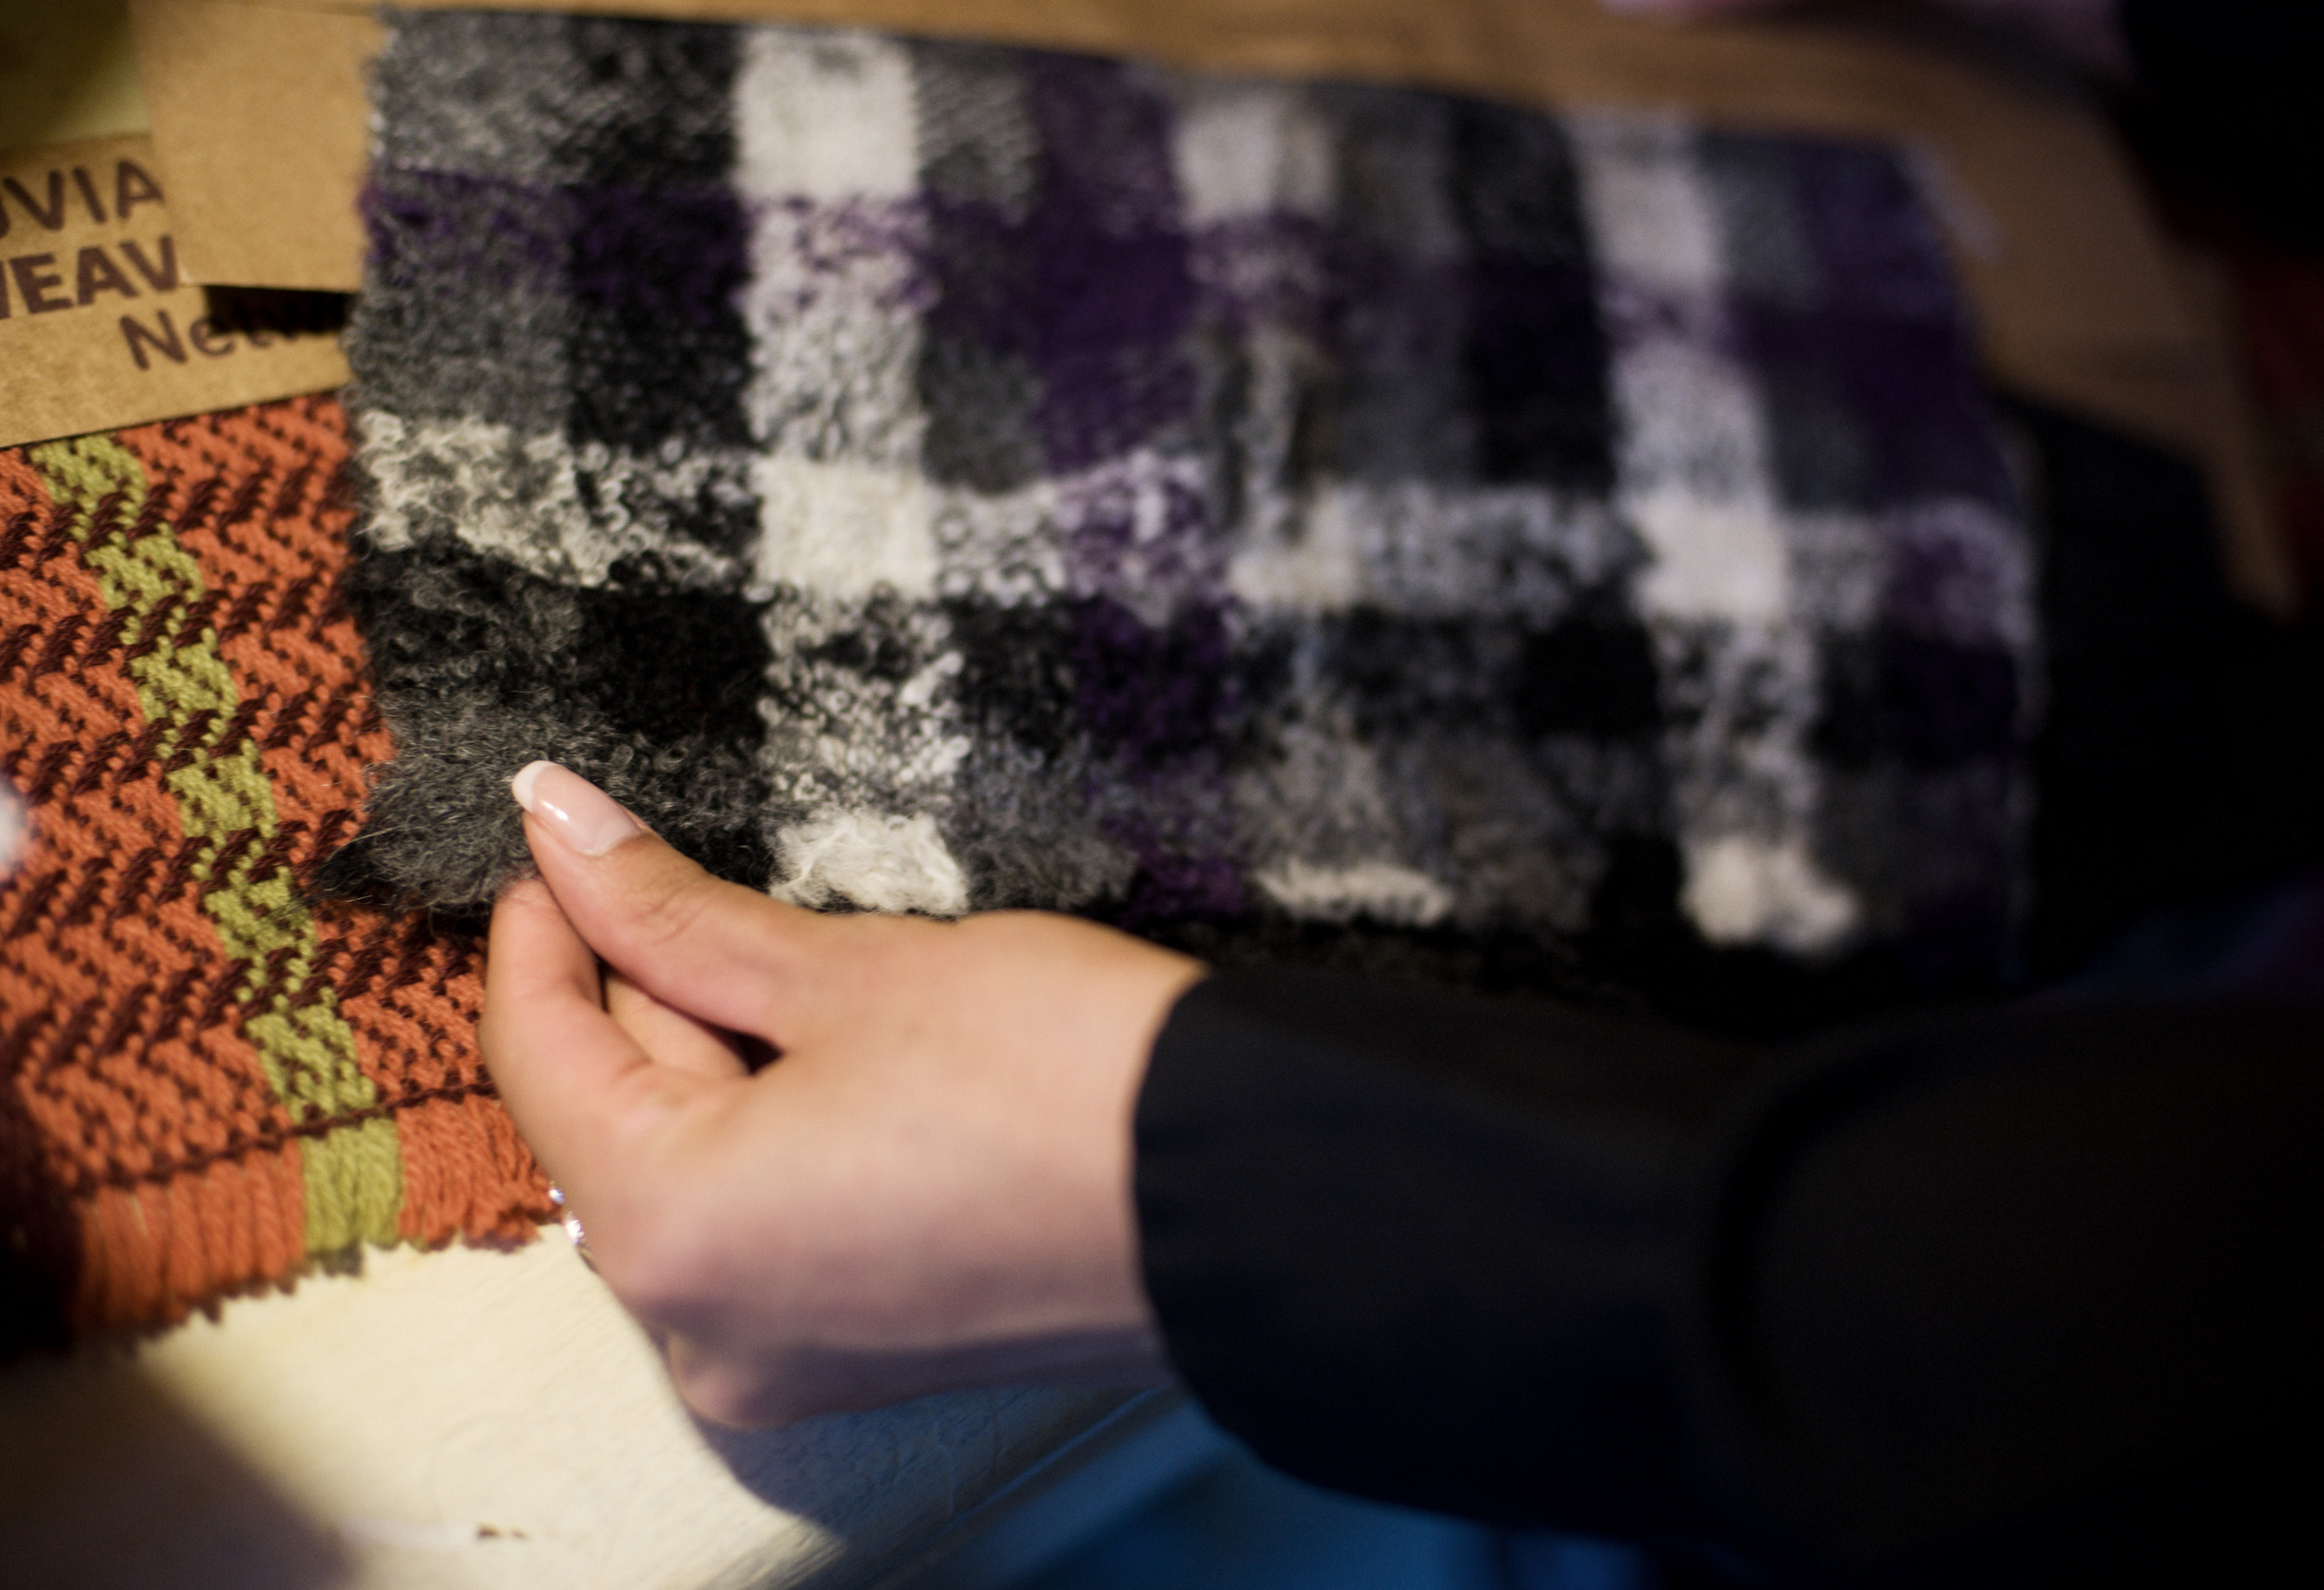 Benita tests the hand of one of the Peruvian textiles recently brought back from a sourcing trip.